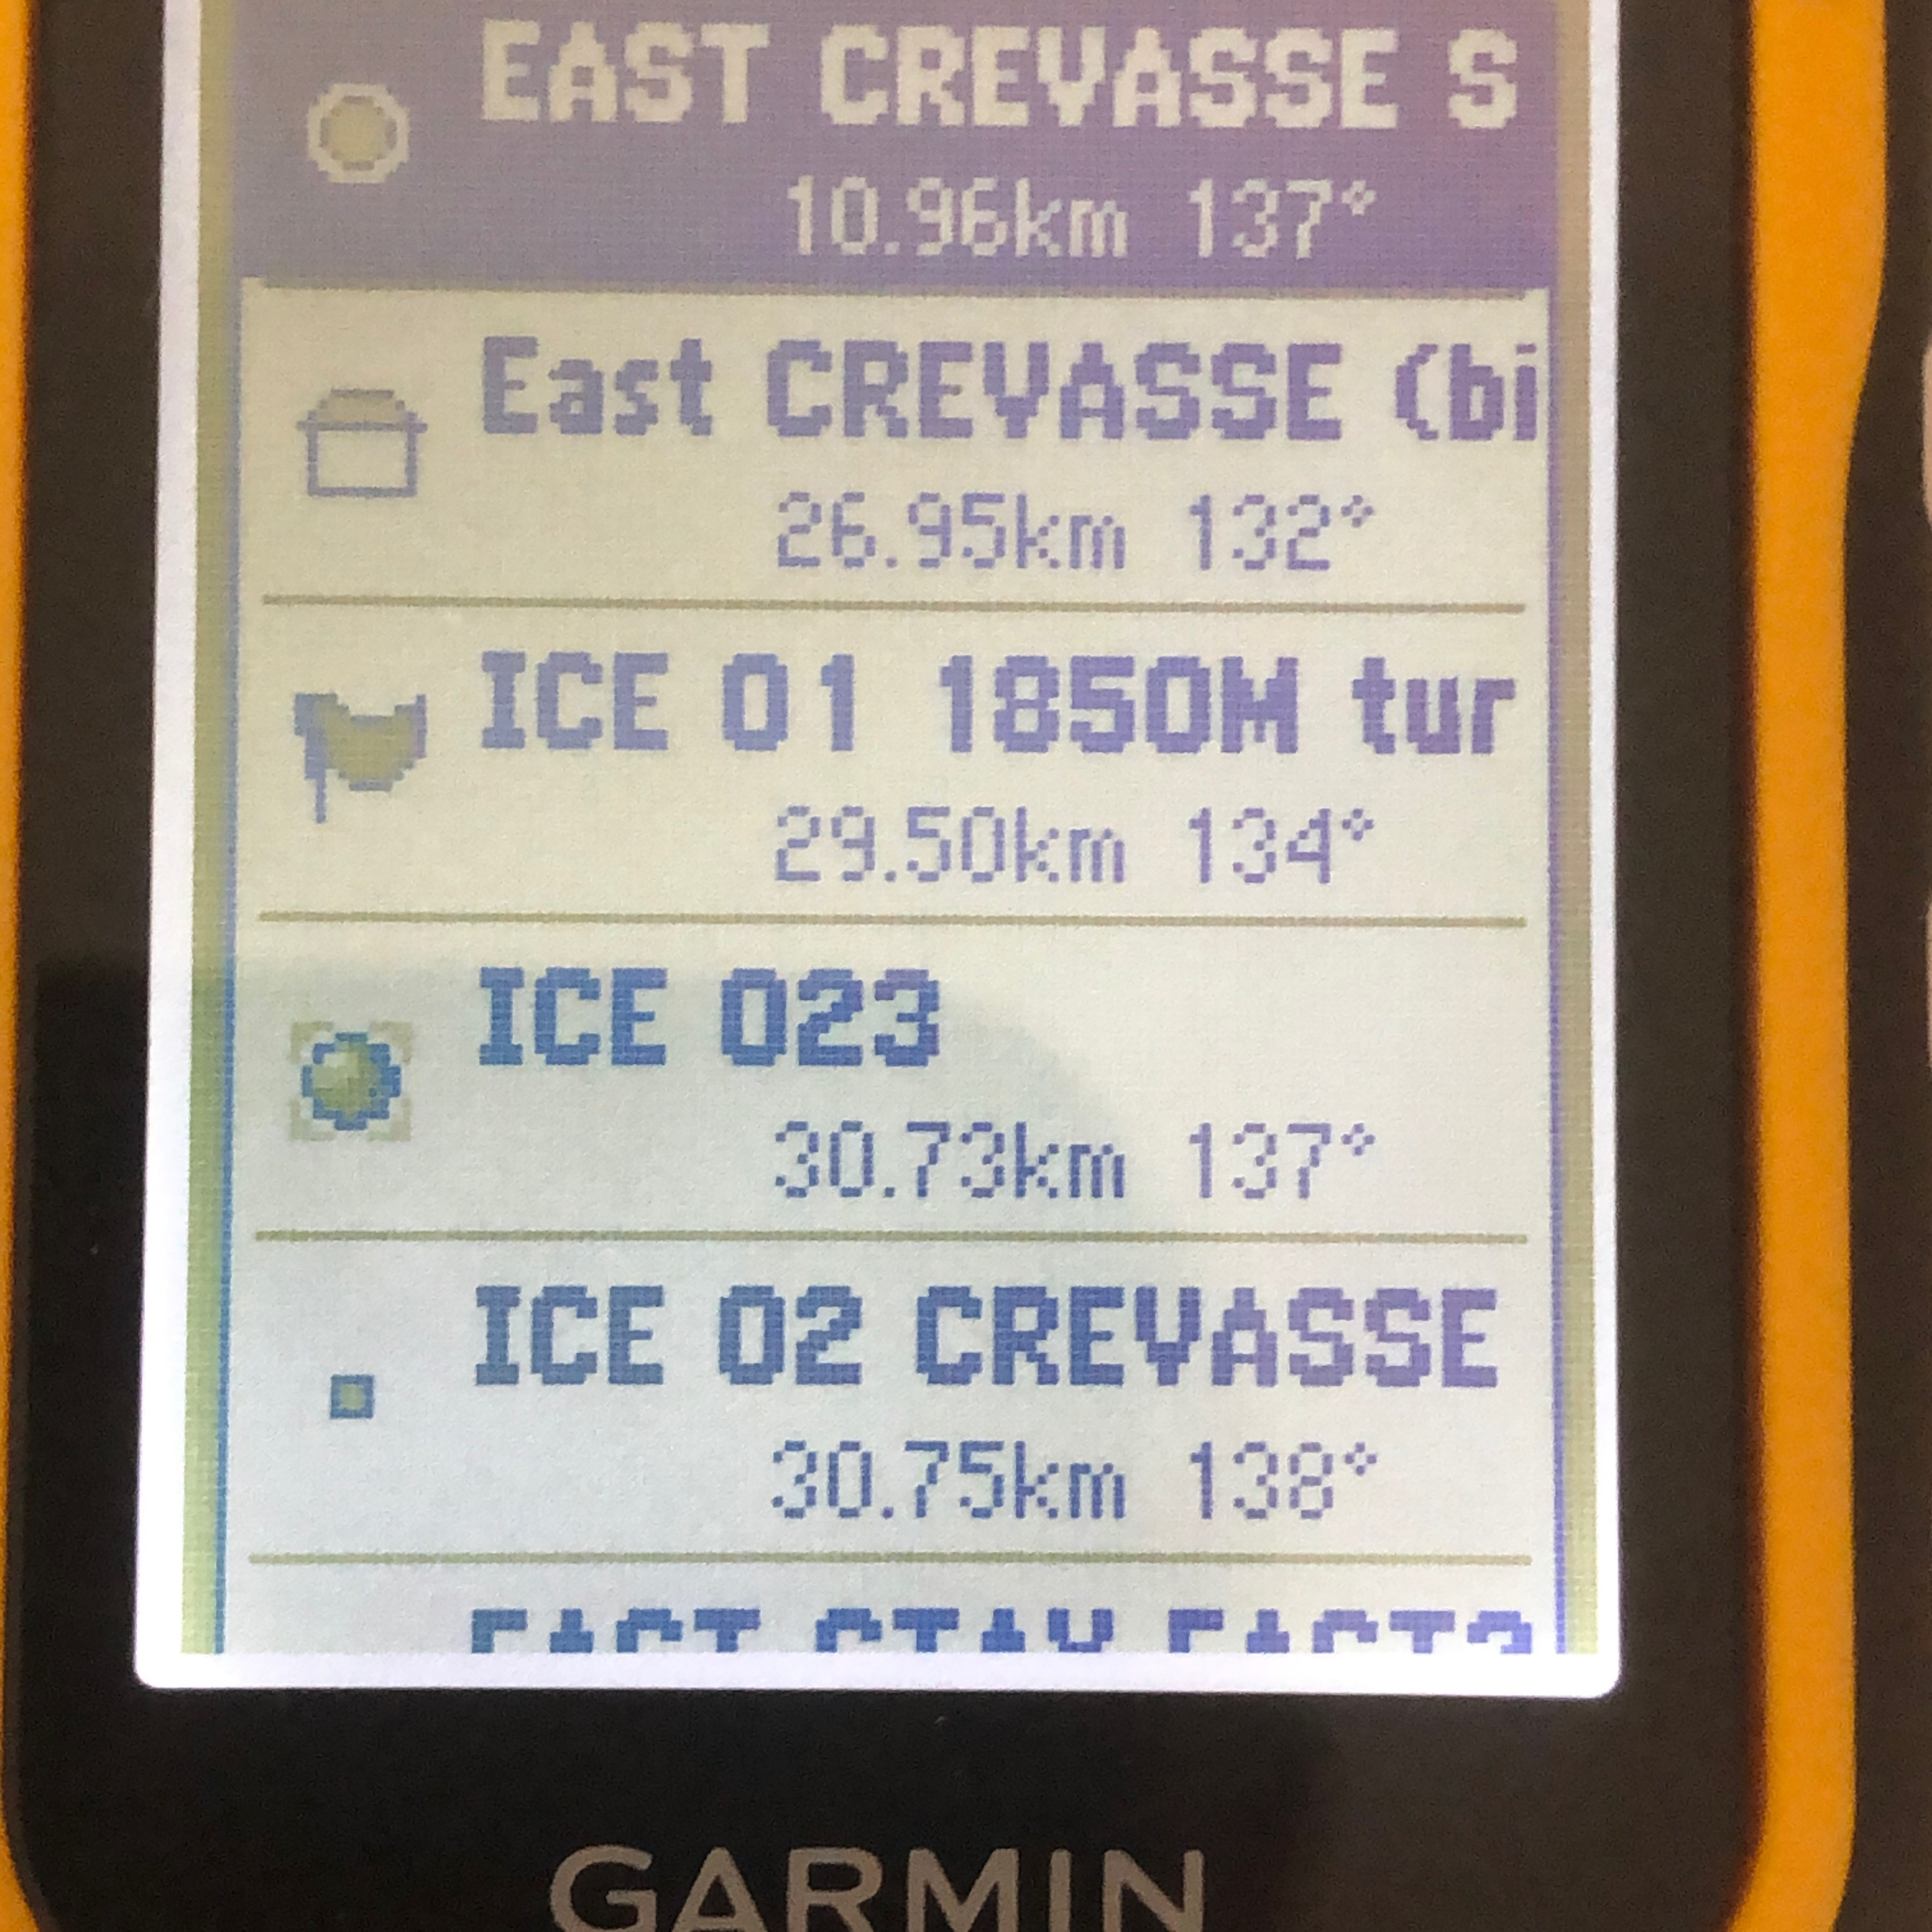 Waypoints entered into my eTrex 10, which I used to navigate across Greenland.